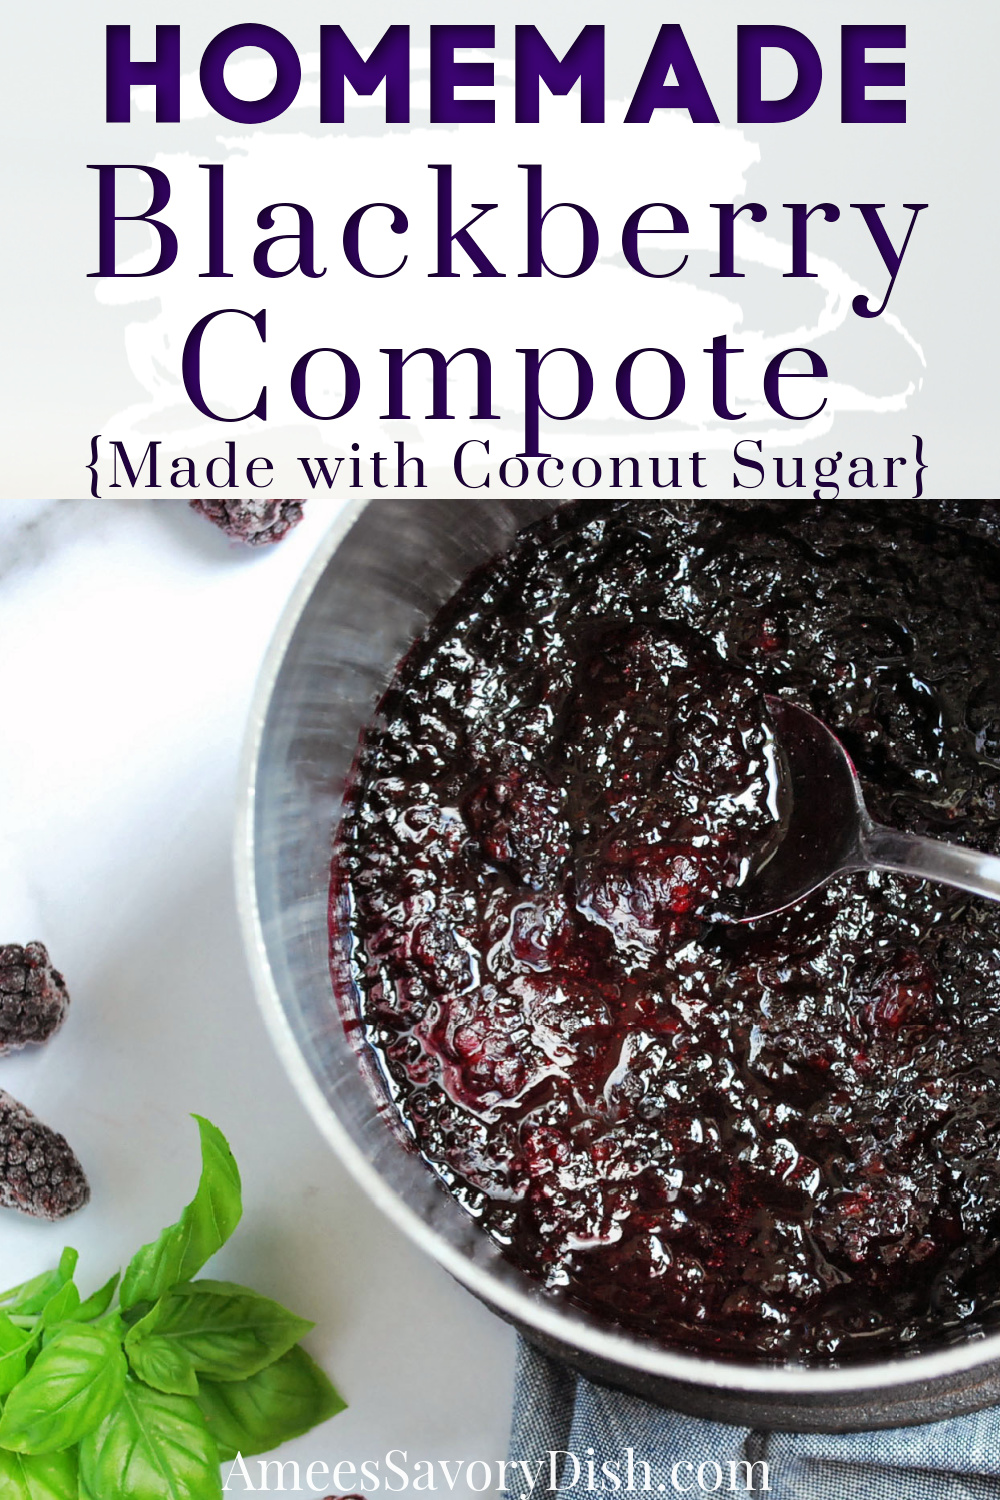 An easy recipe for making homemade blackberry compote using frozen blackberries, coconut sugar, and lemon juice perfect for topping yogurt, pancakes, waffles, and more! #compote #fruitcompote #compoterecipe #blackberrycompote #berrycompote via @Ameessavorydish